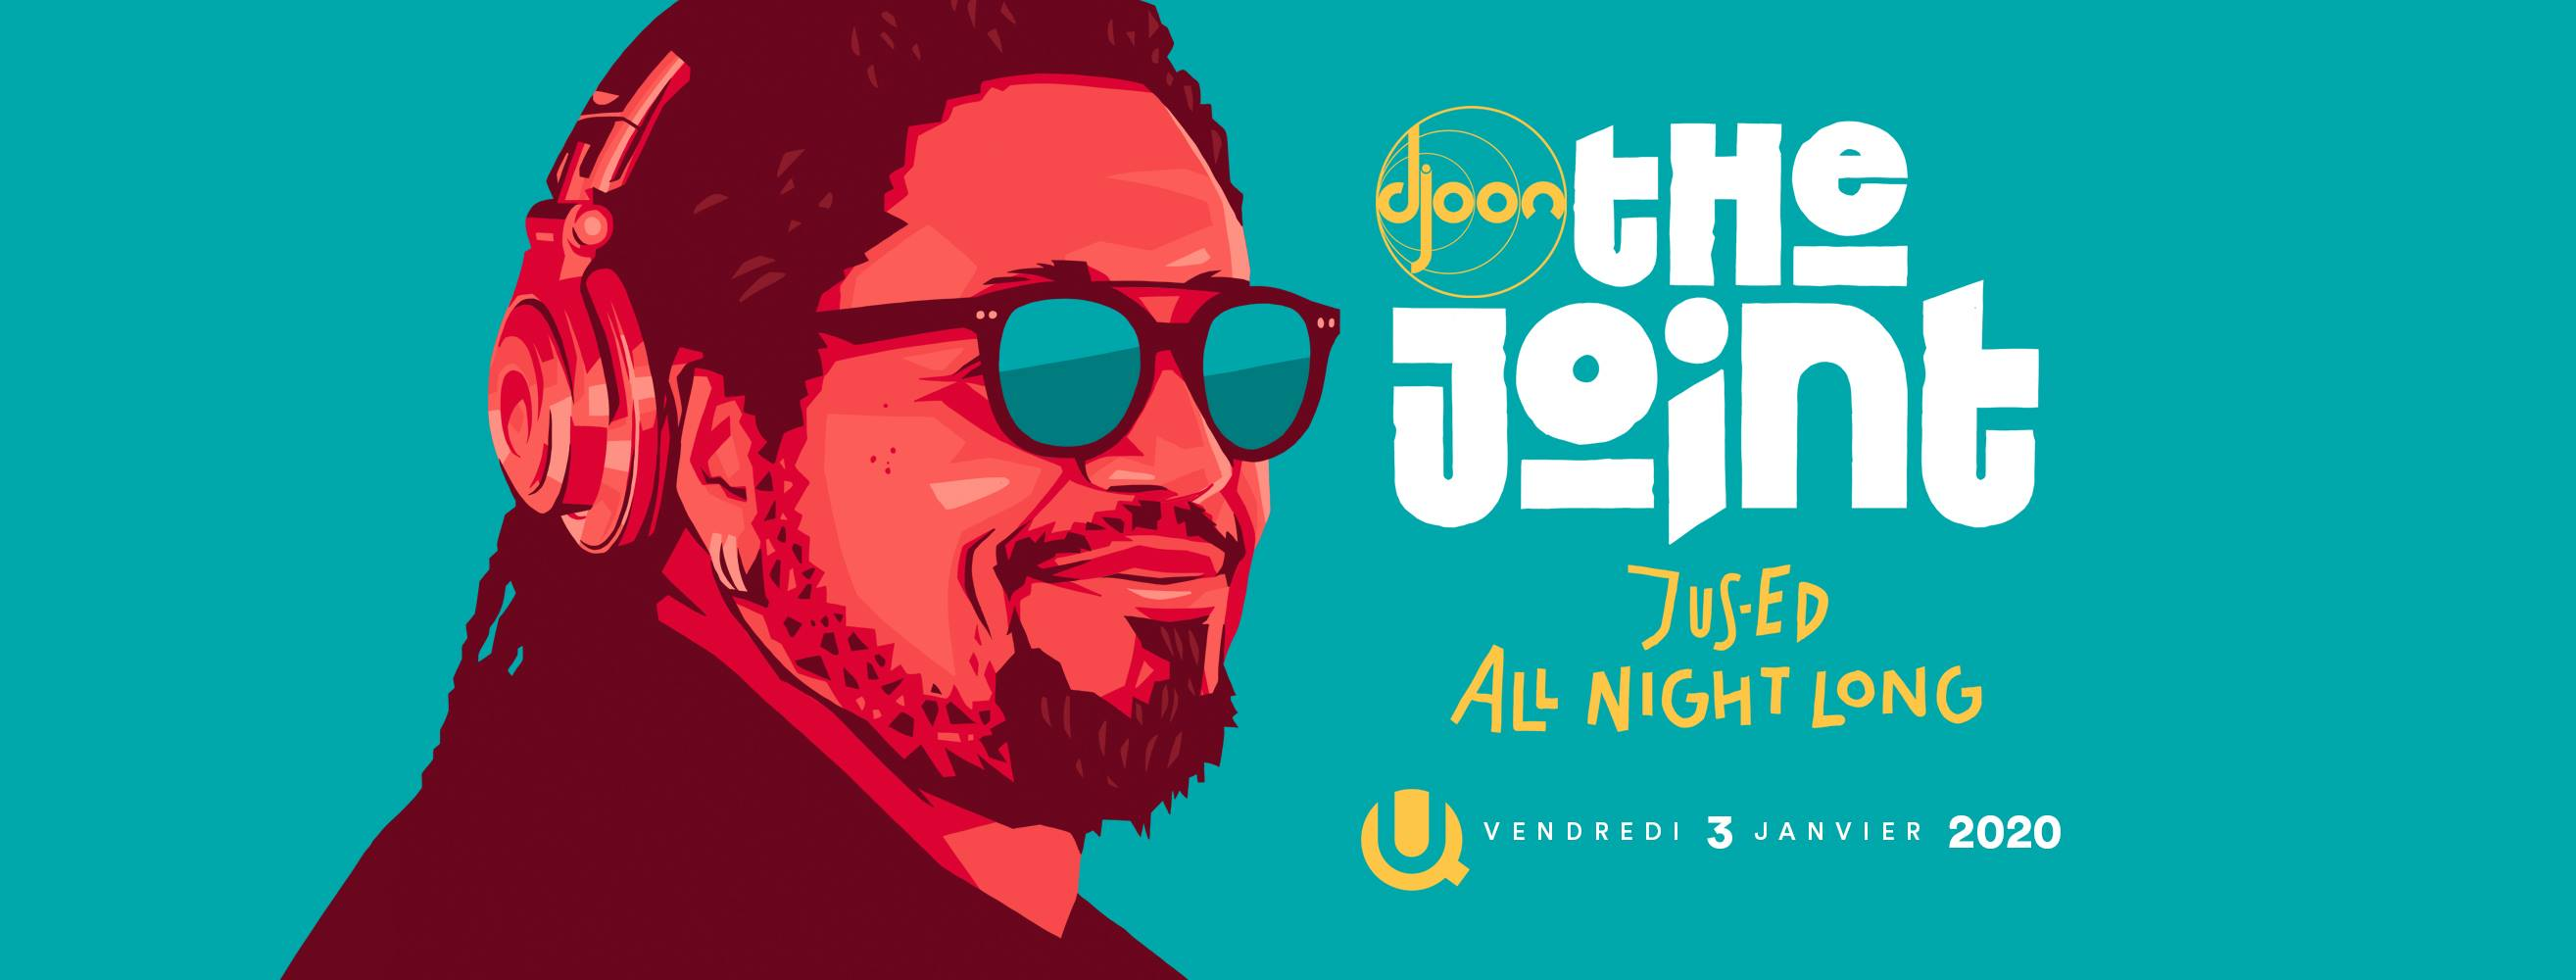 The Joint: DJ Jus-Ed all night long